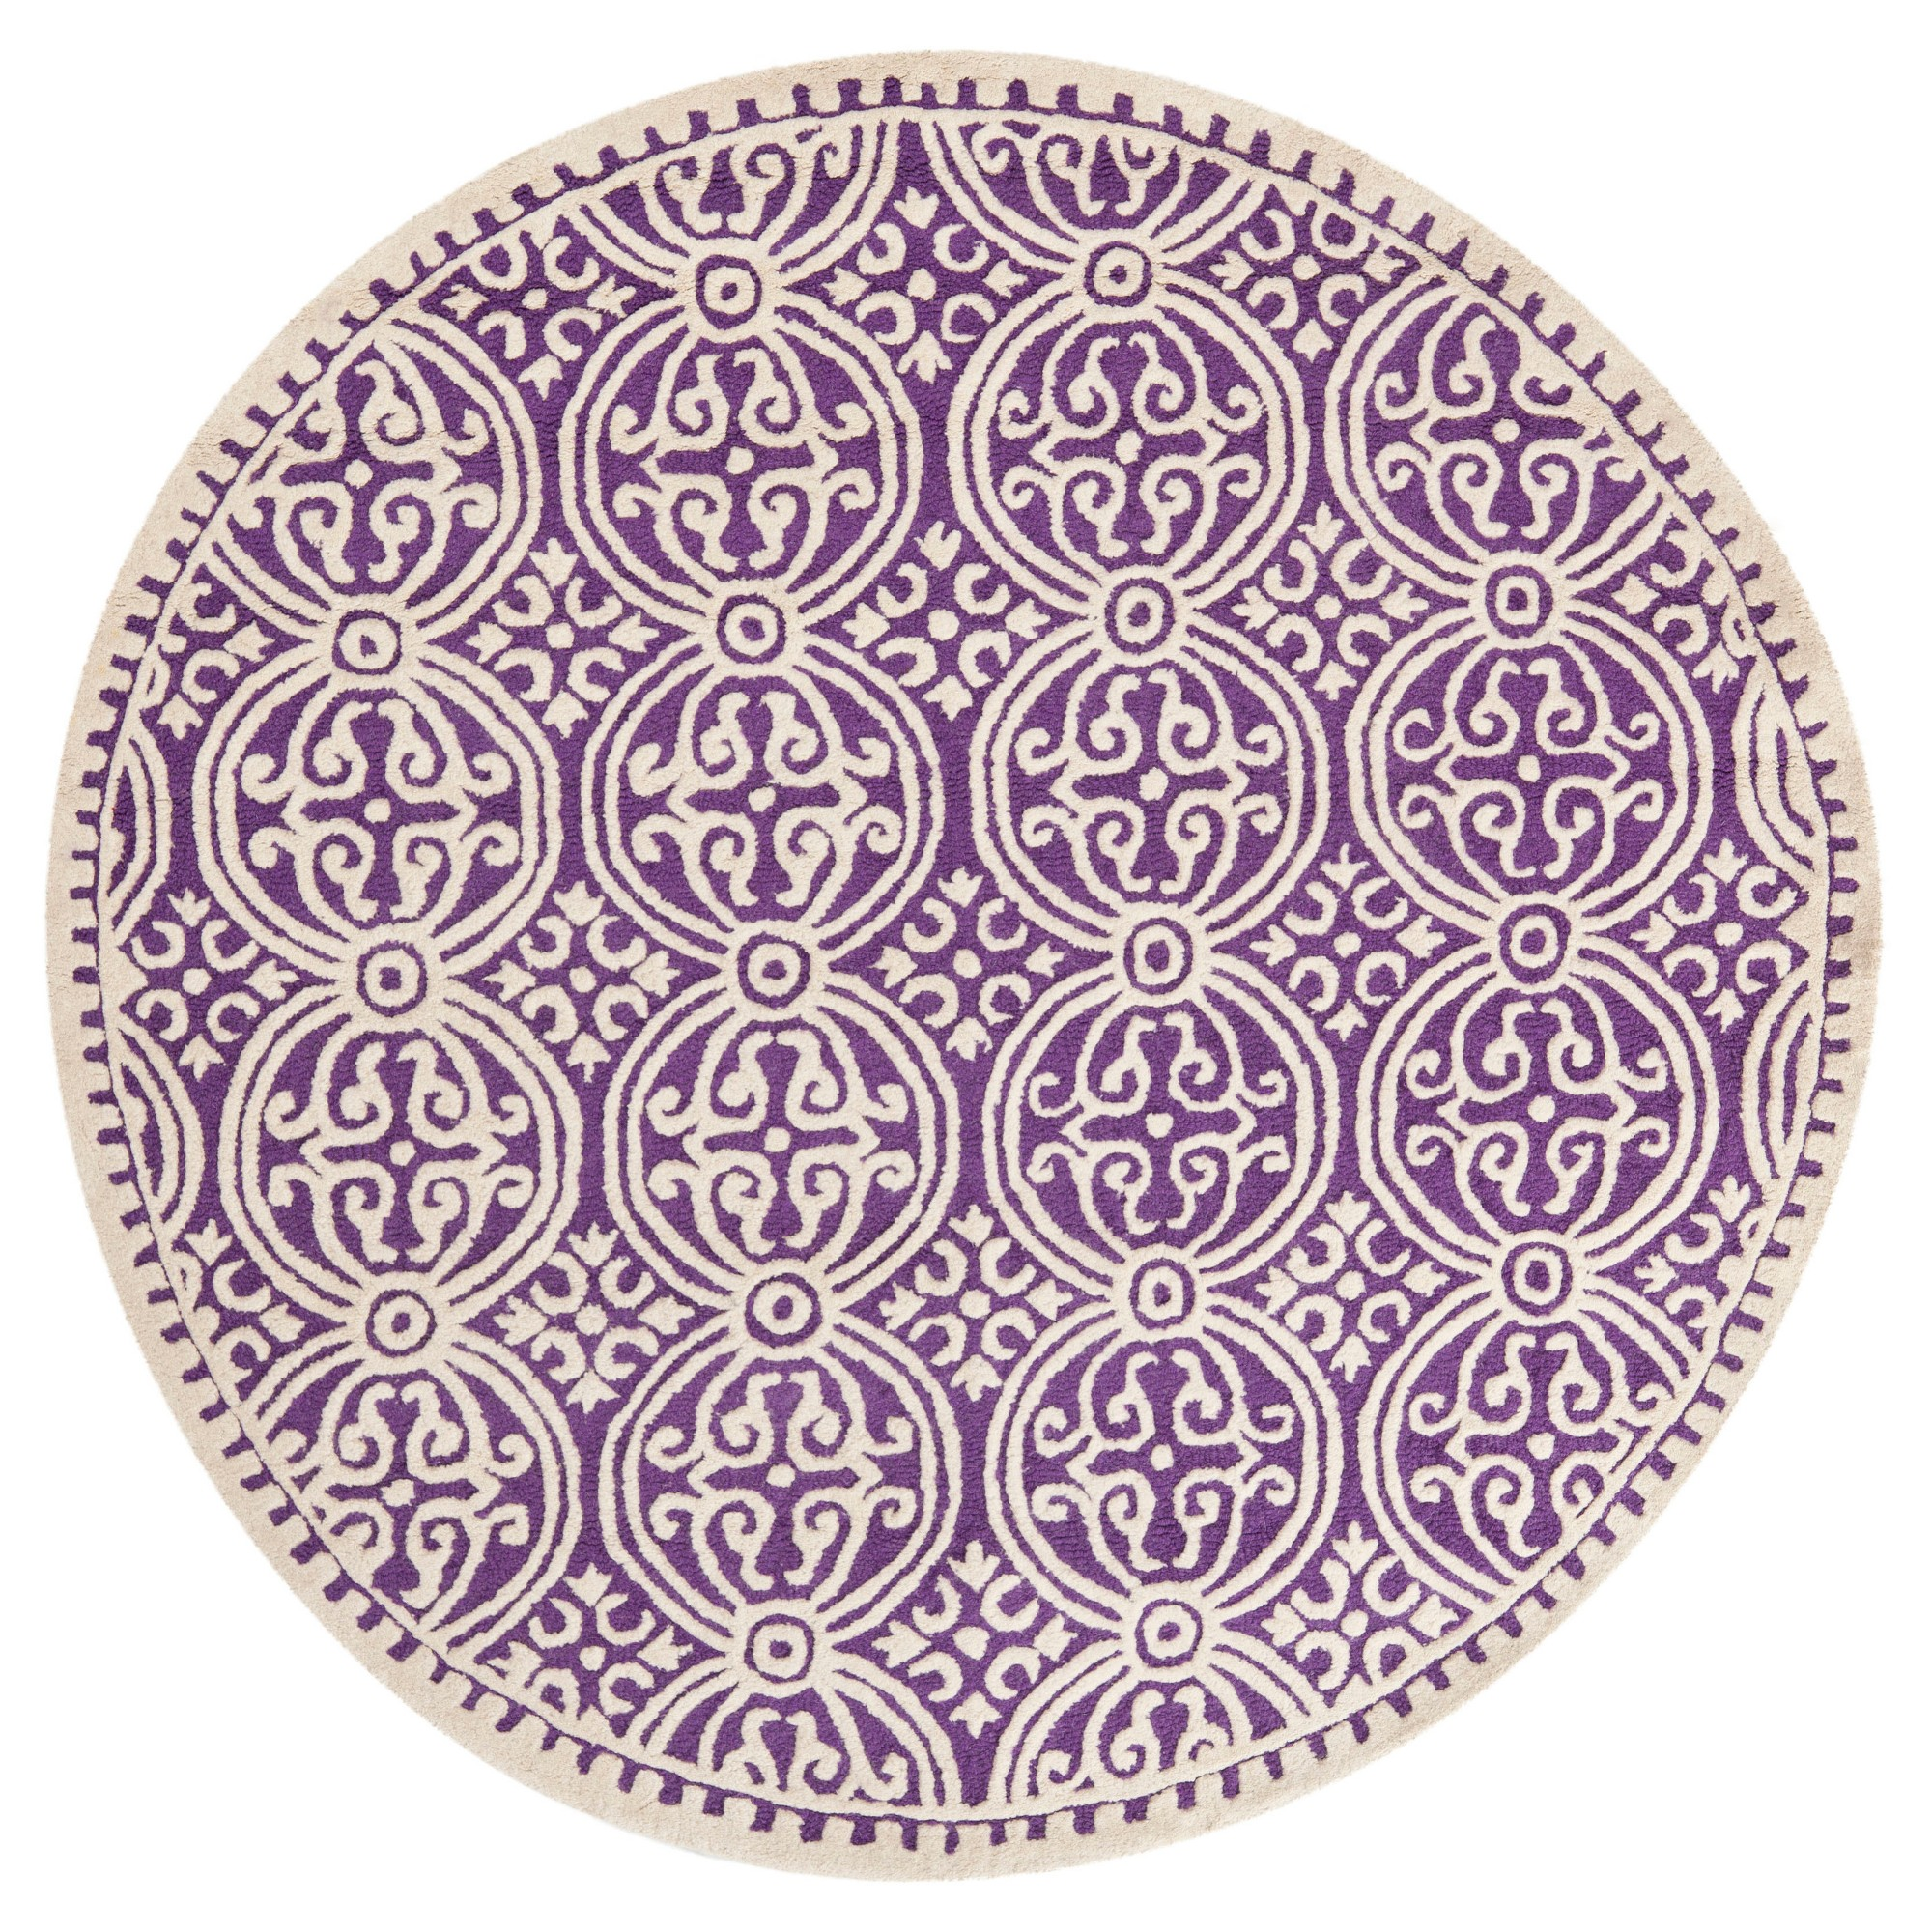 f22da7a42b45fd Purple/Ivory Color Block Tufted Round Accent Rug 4' - Safavieh, Size ...